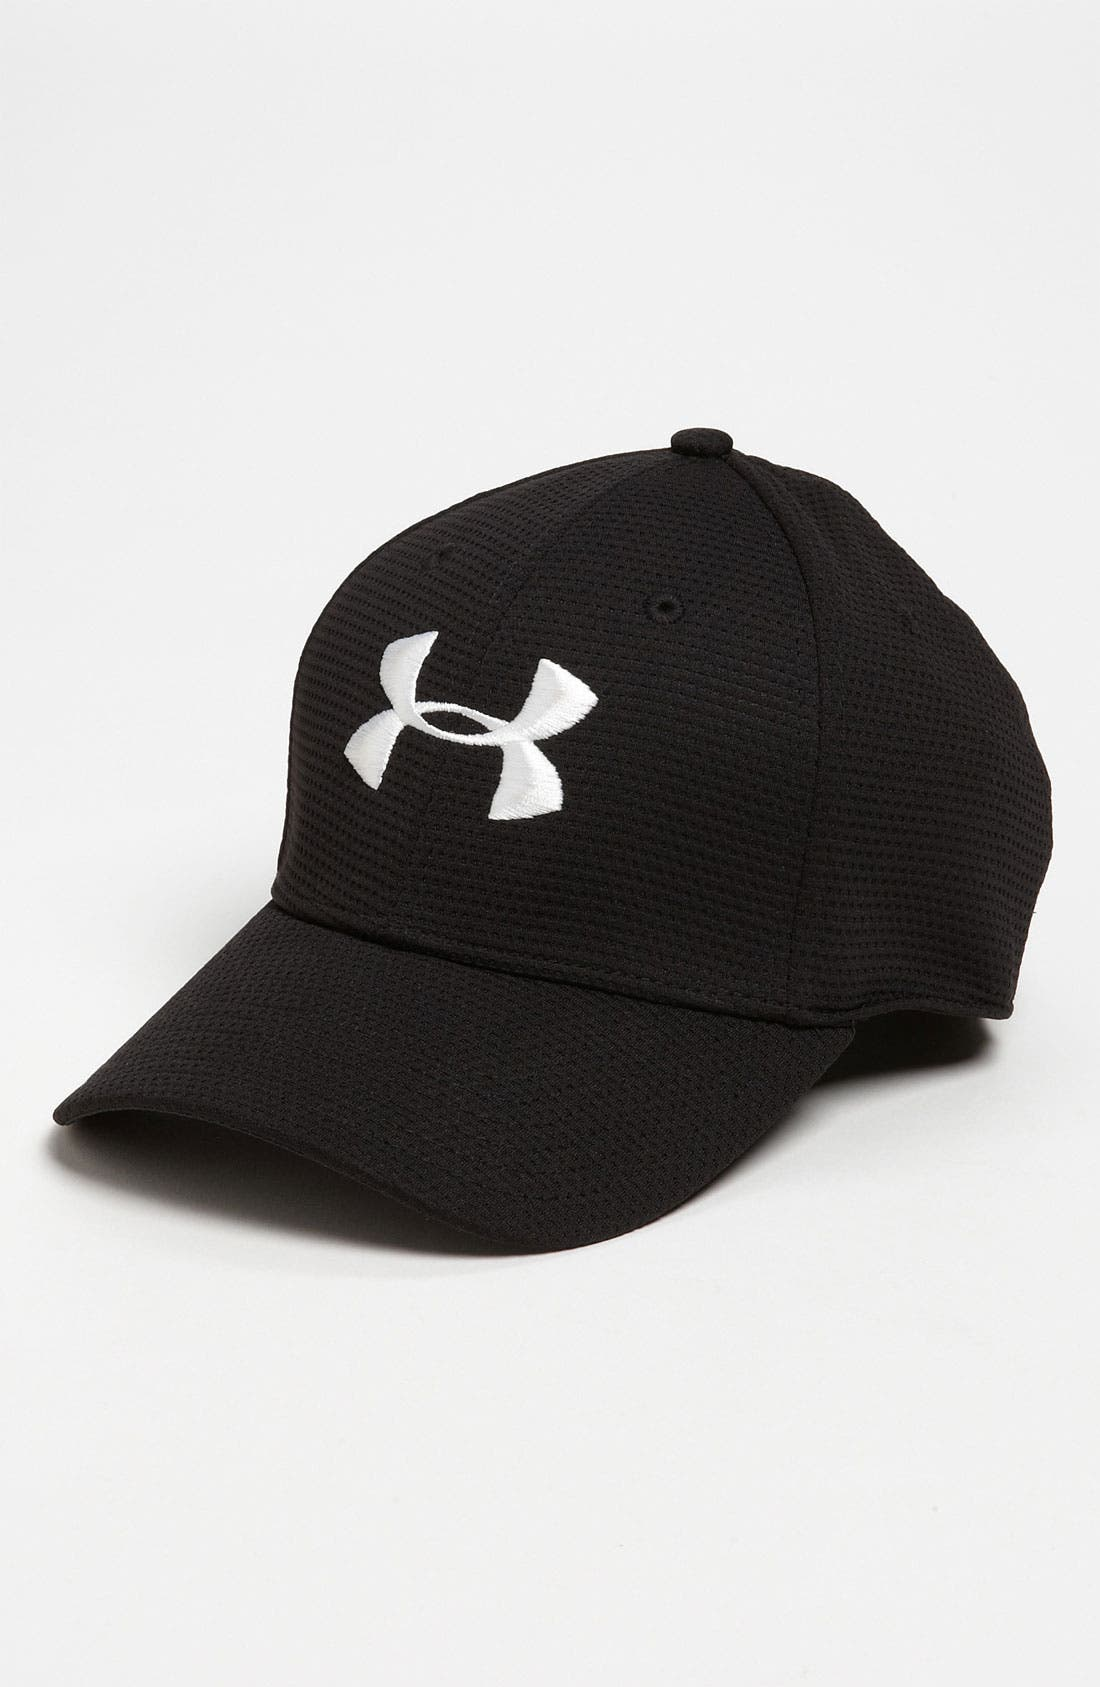 Main Image - Under Armour 'Blitzing' Stretch Fit Baseball Cap